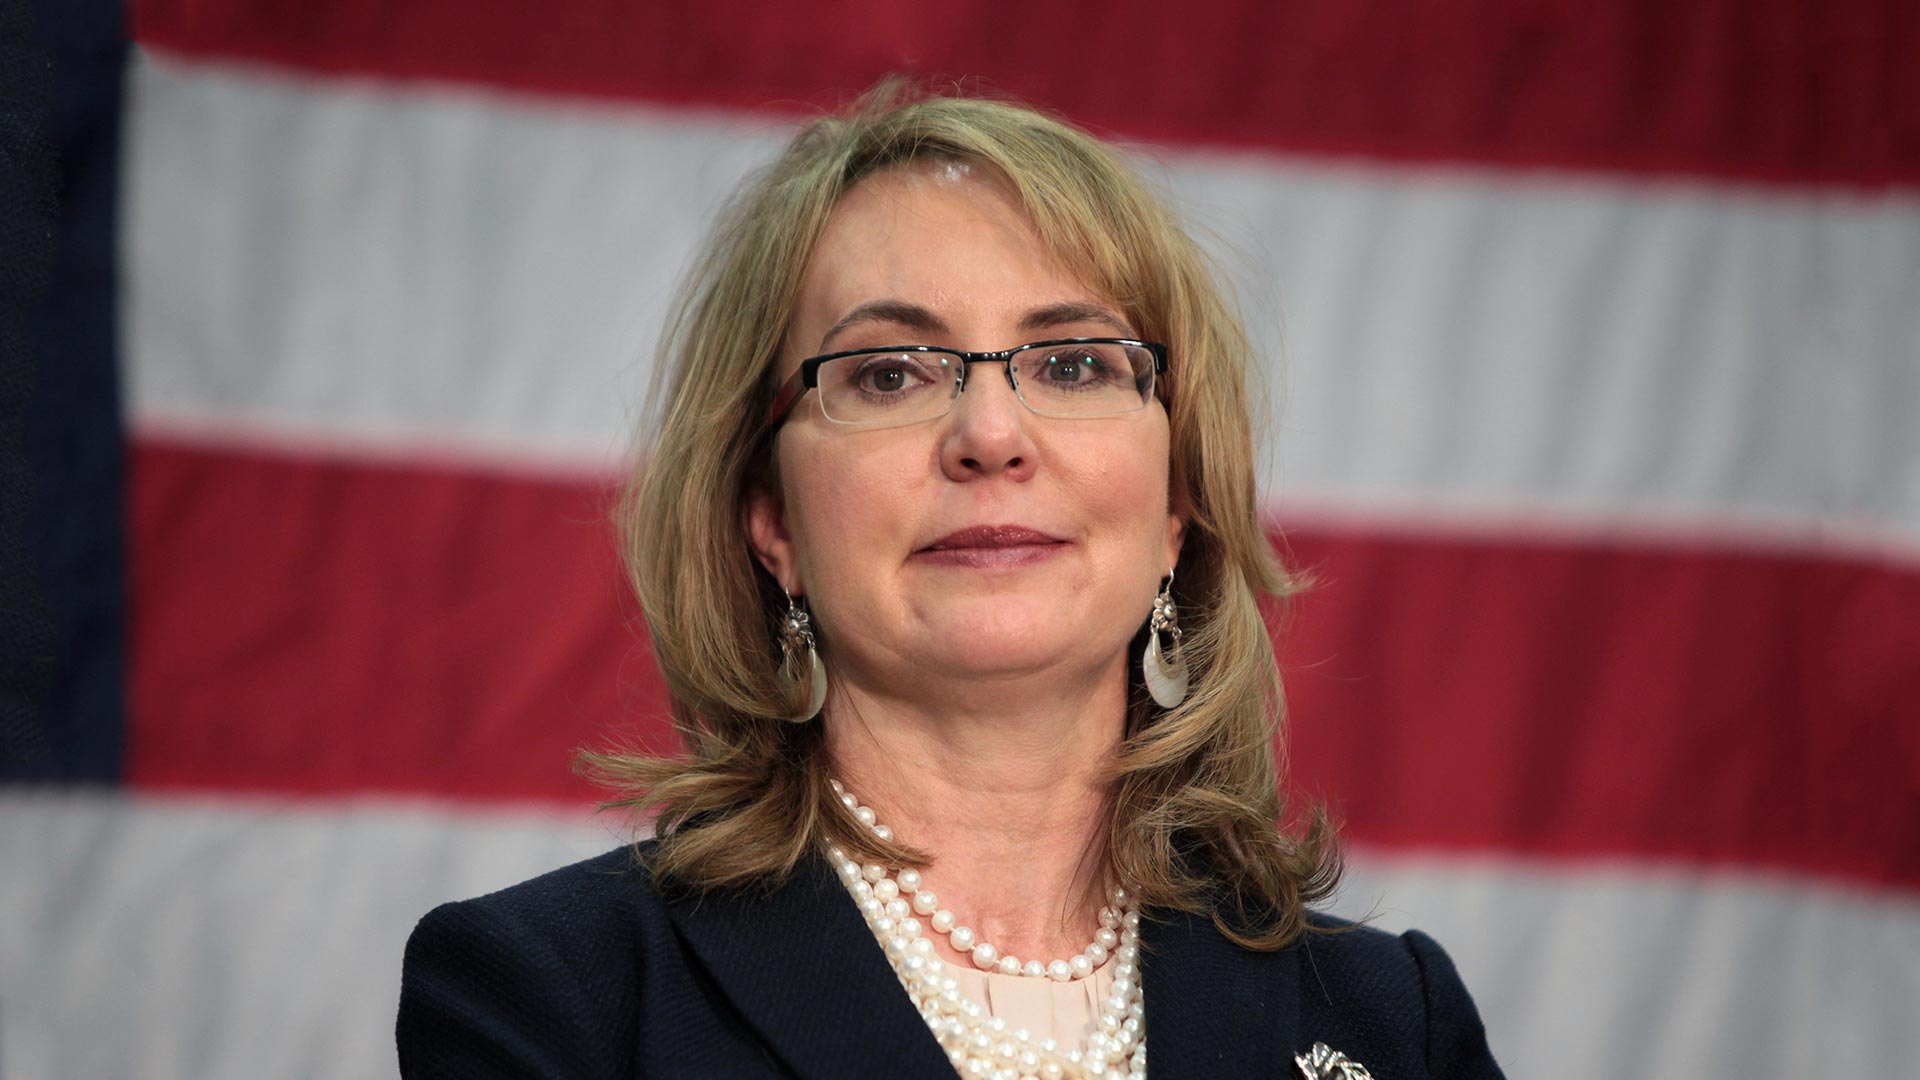 Gabrielle Giffords speaking at an event in Phoenix, Arizona.